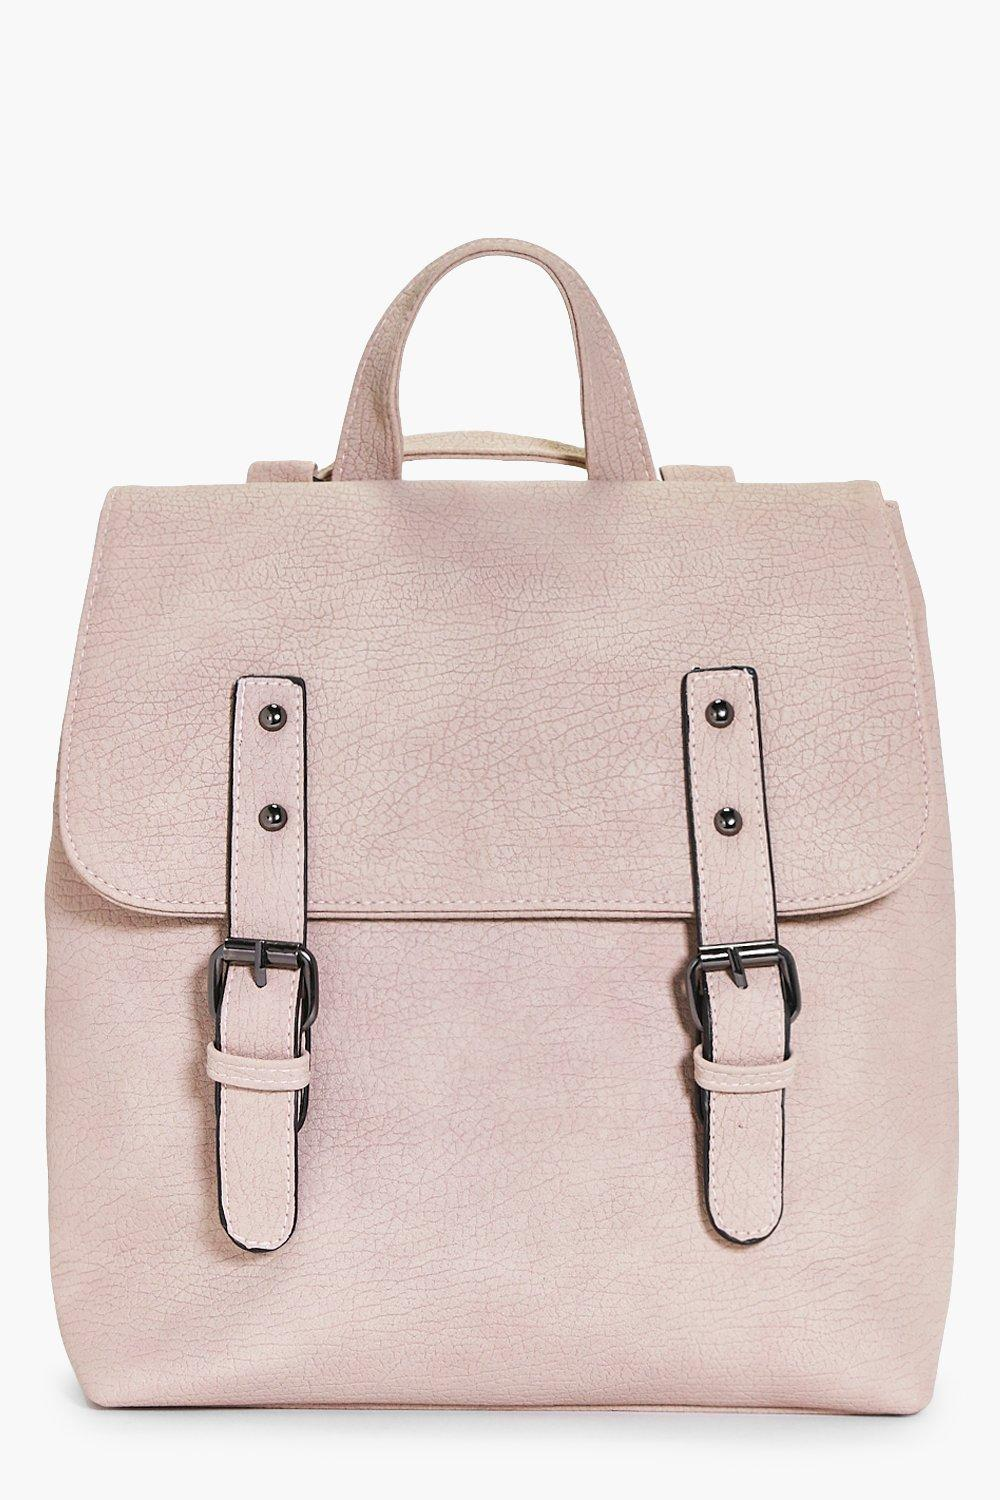 Buckle Detail Structured Backpack - blush - Keira